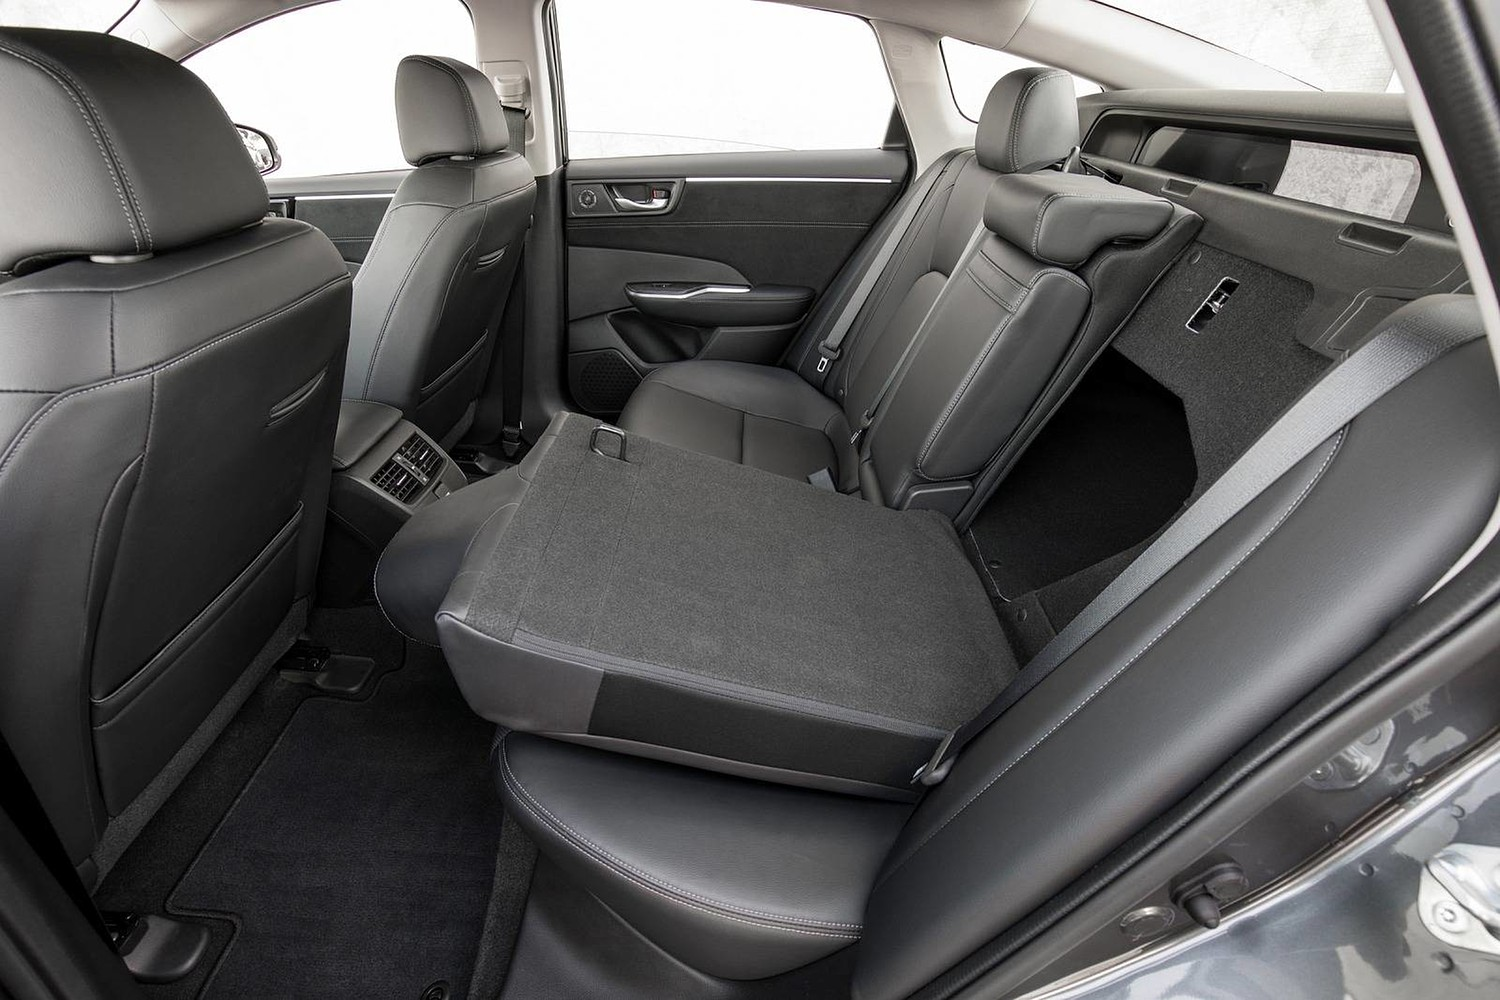 2018 Honda Clarity Touring Plug-In Hybrid Sedan Rear Seats Down